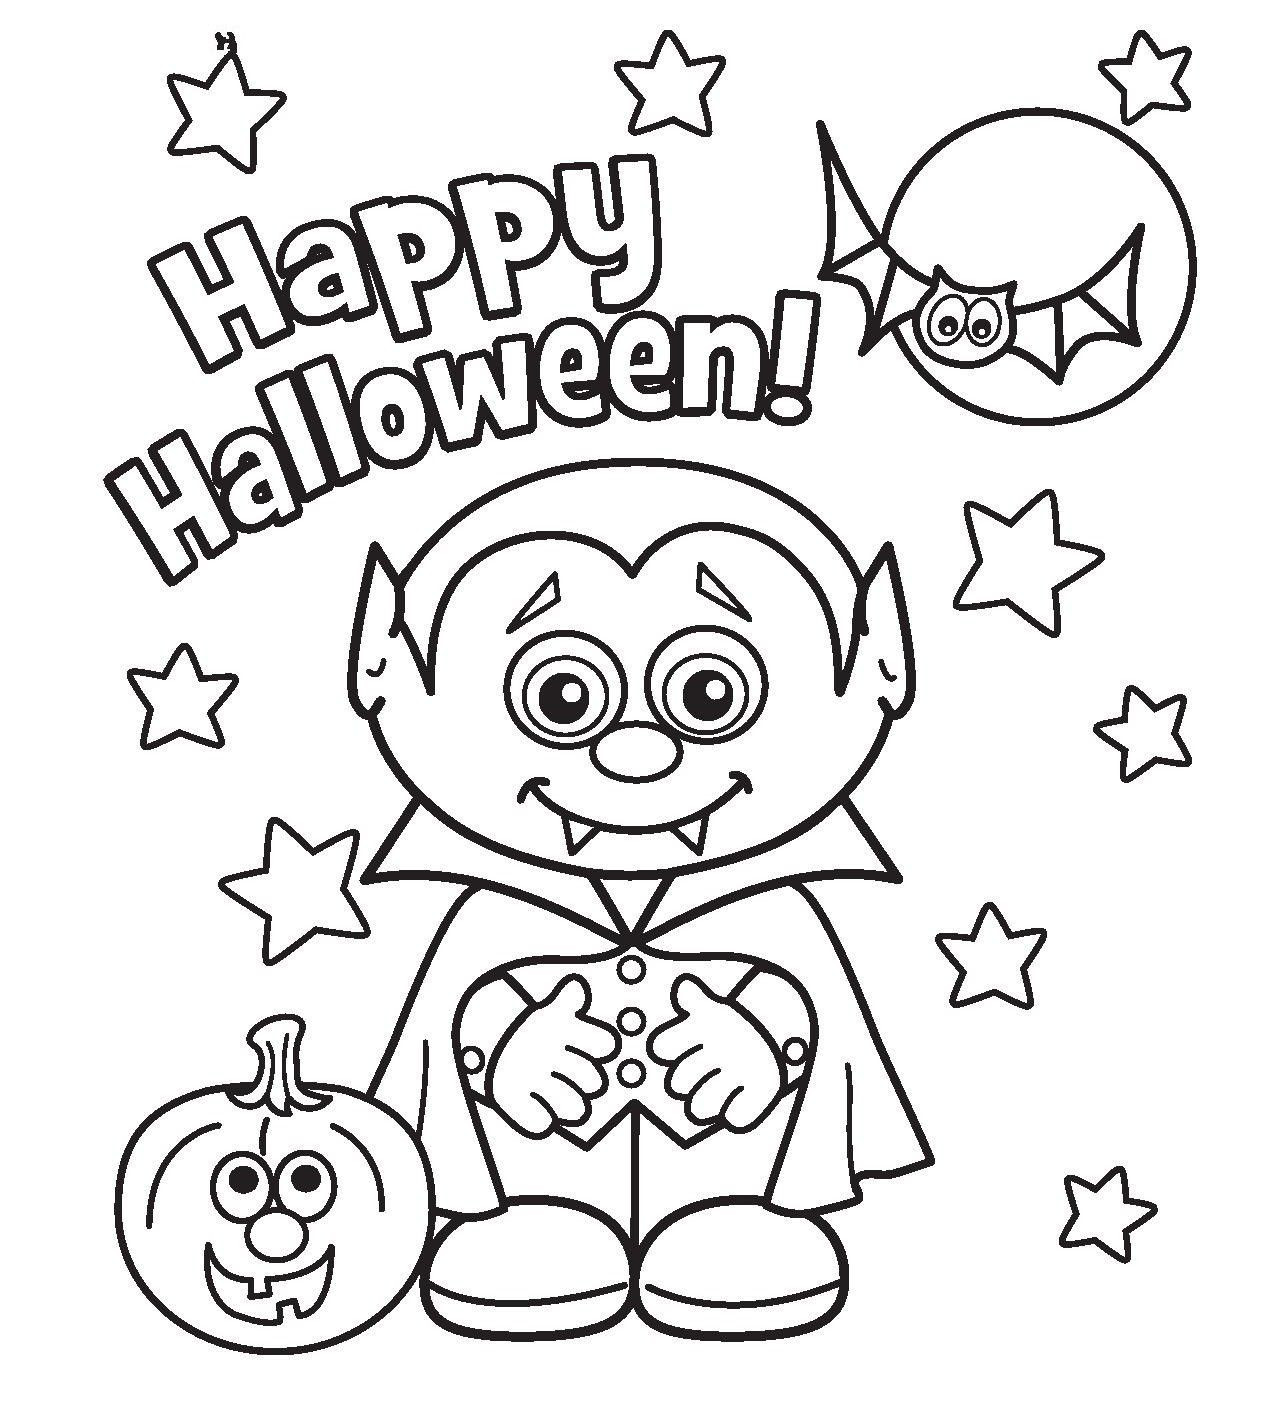 Free Coloring Pages For Halloween Printable  Halloween Coloring Pages Free Printable Coloring Home